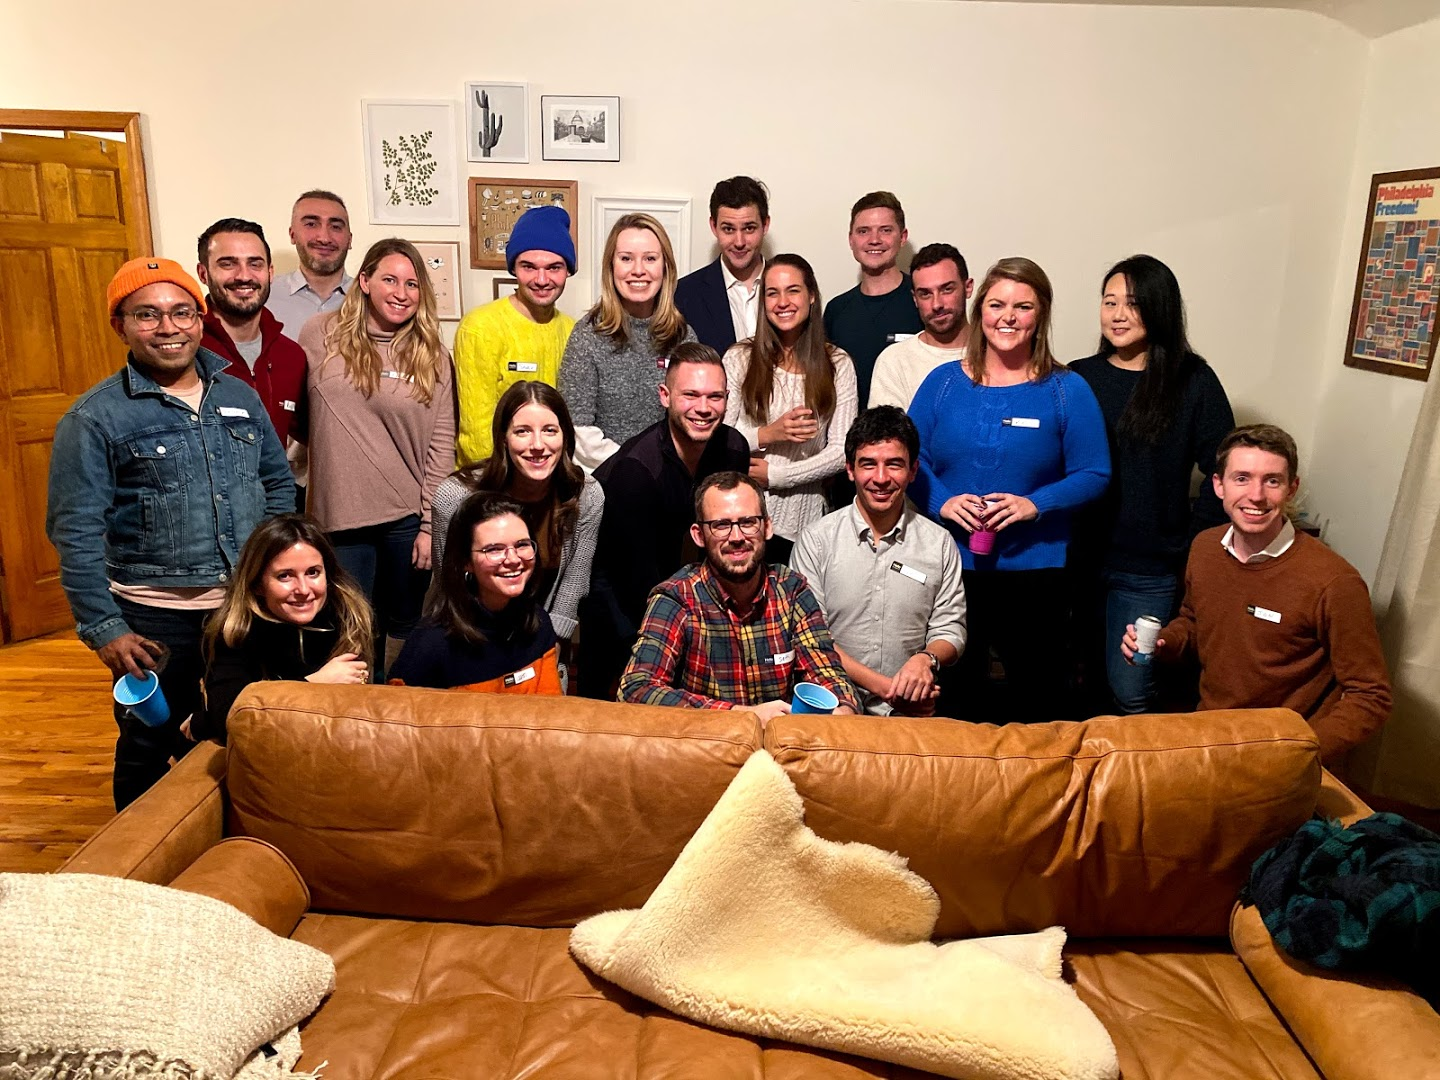 Approx 20 people arranged for a group photo inside an apartment at a house party